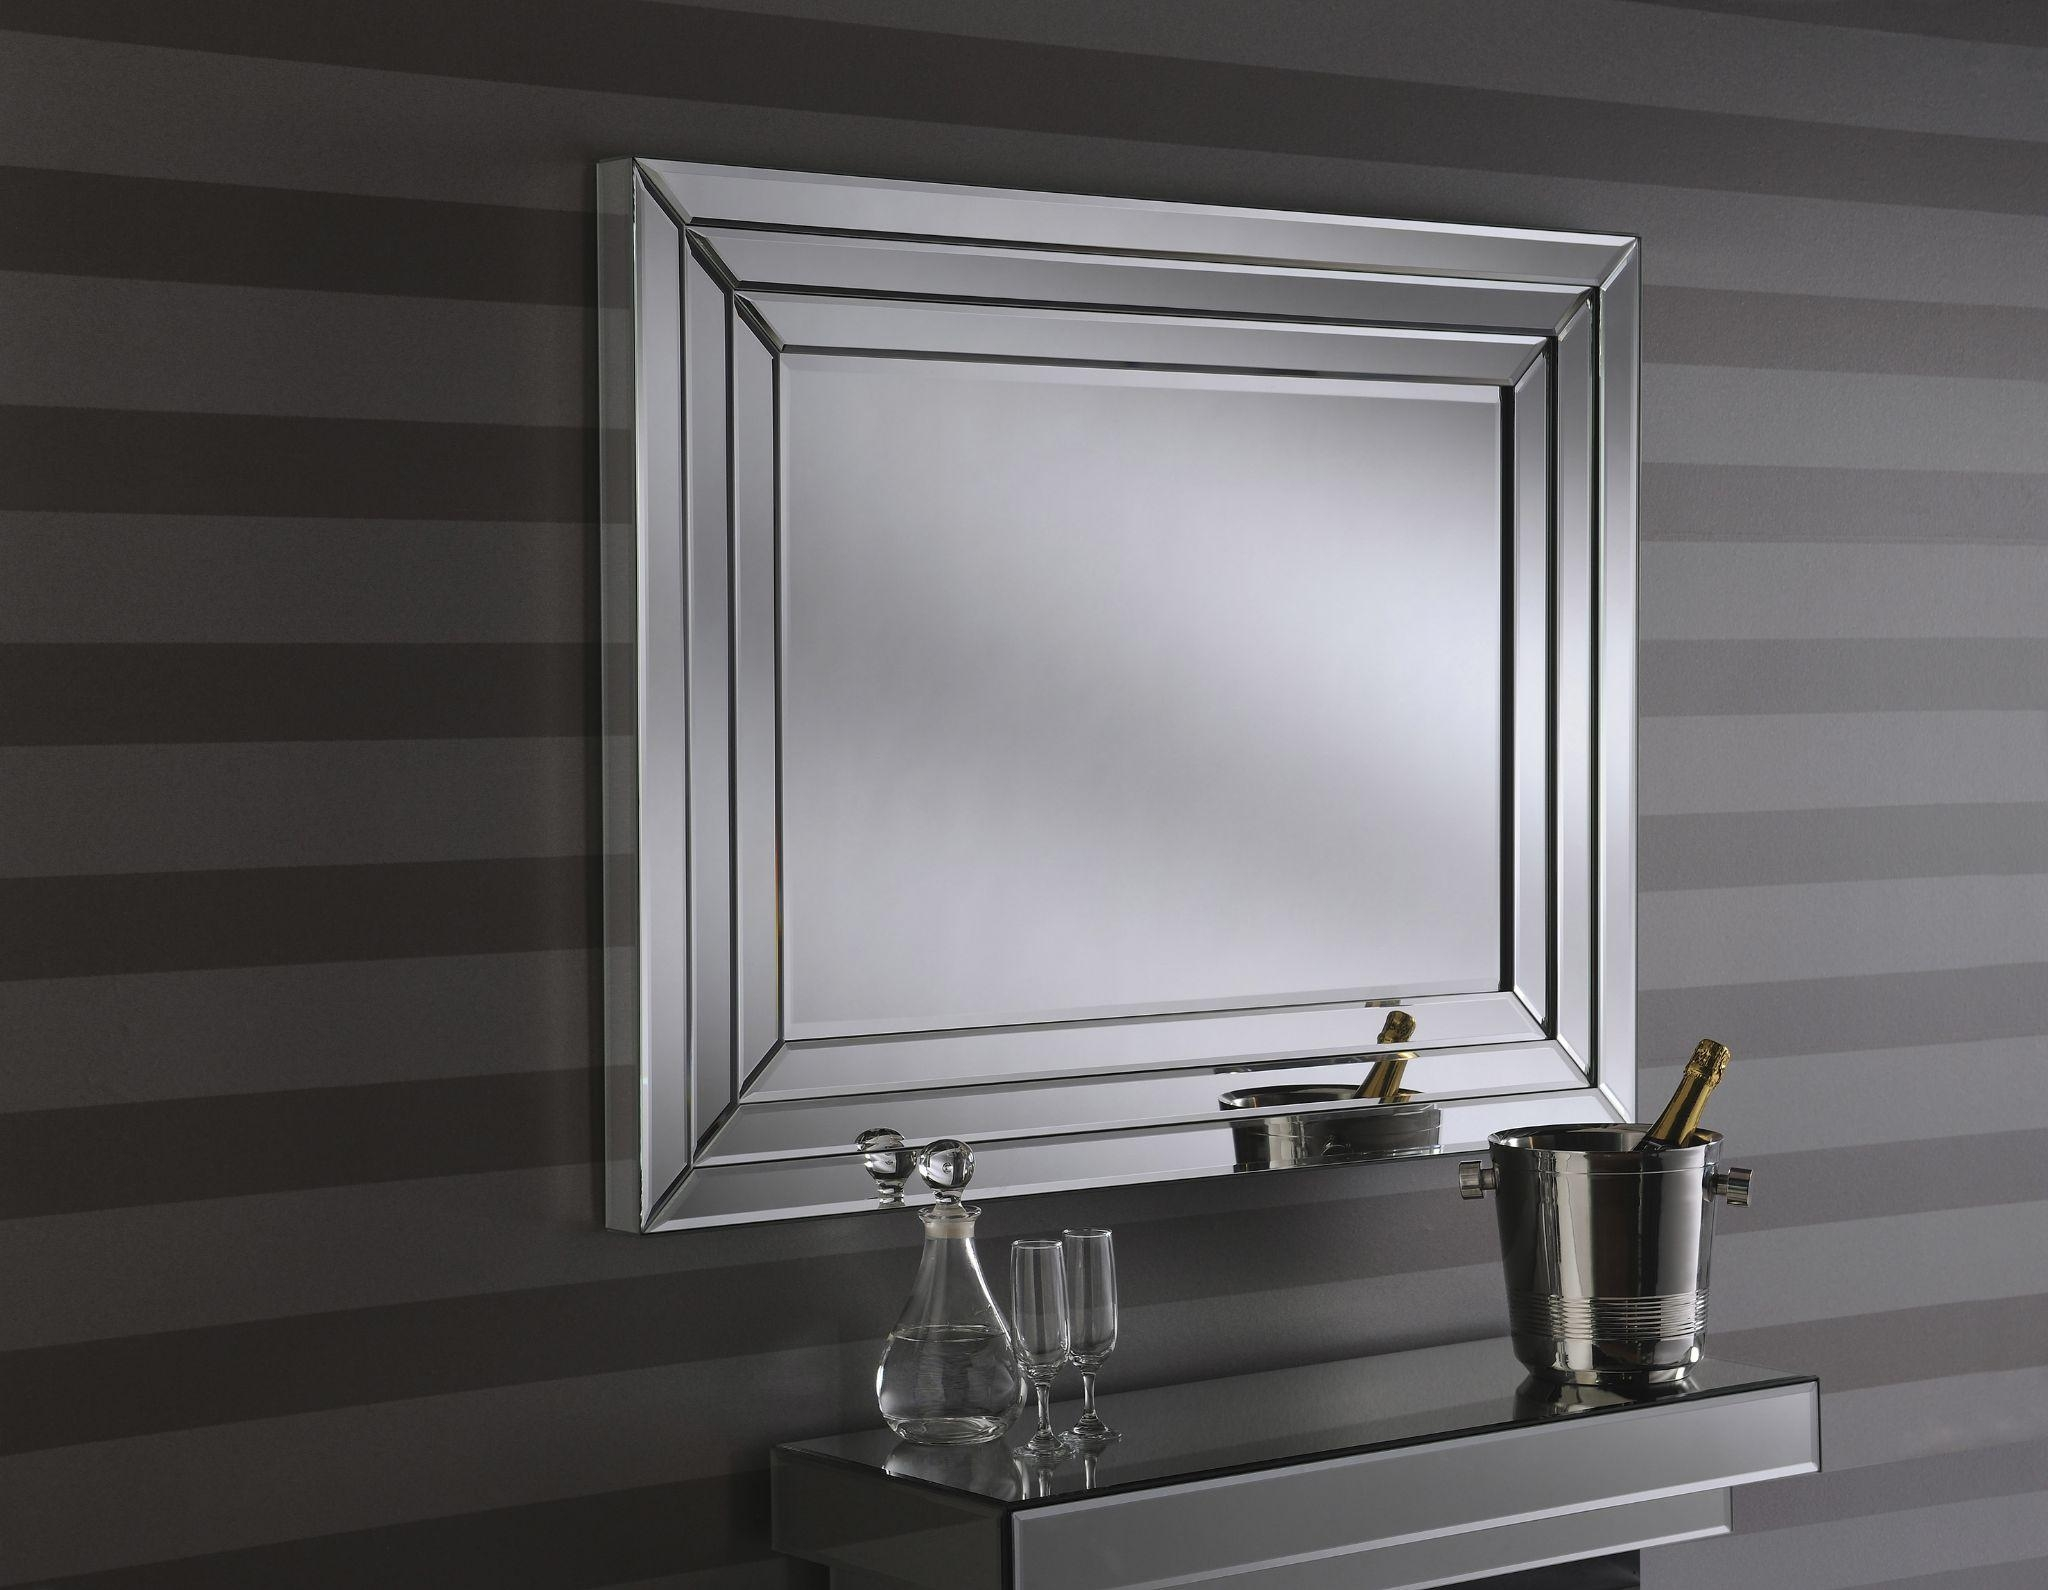 Amazing Bevelled Drilled Bathroom Mirrors 90 For Your With Intended For Bevelled Mirrors (Image 4 of 20)